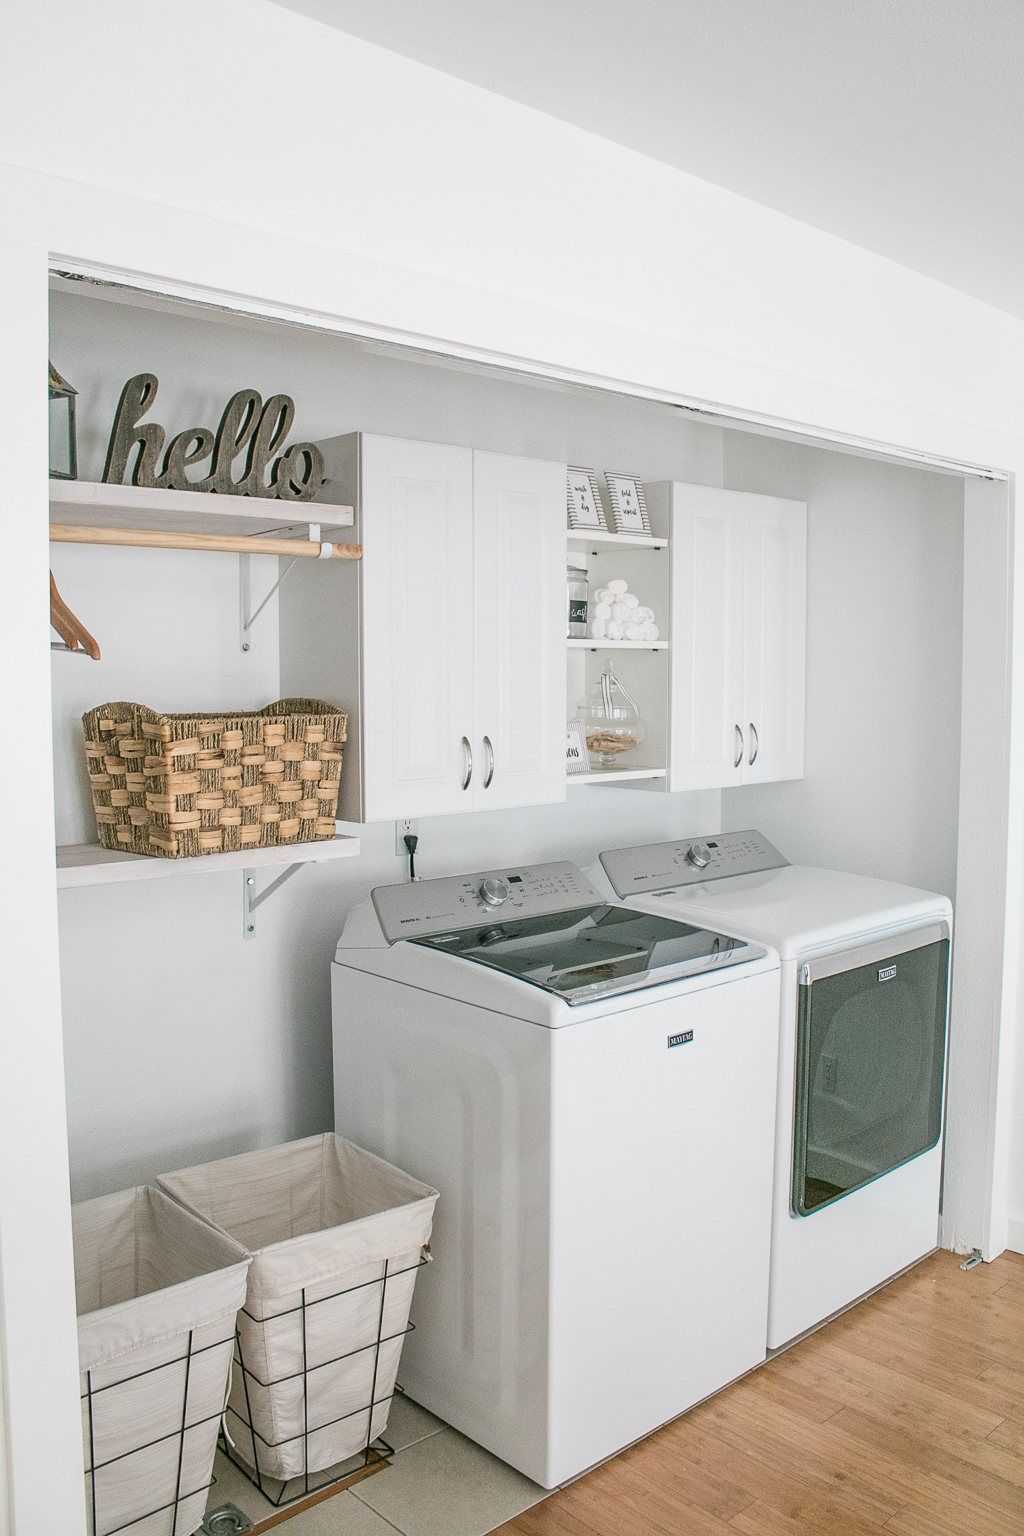 Laundry Room Remodel with White Cabinets and Farmhouse Style